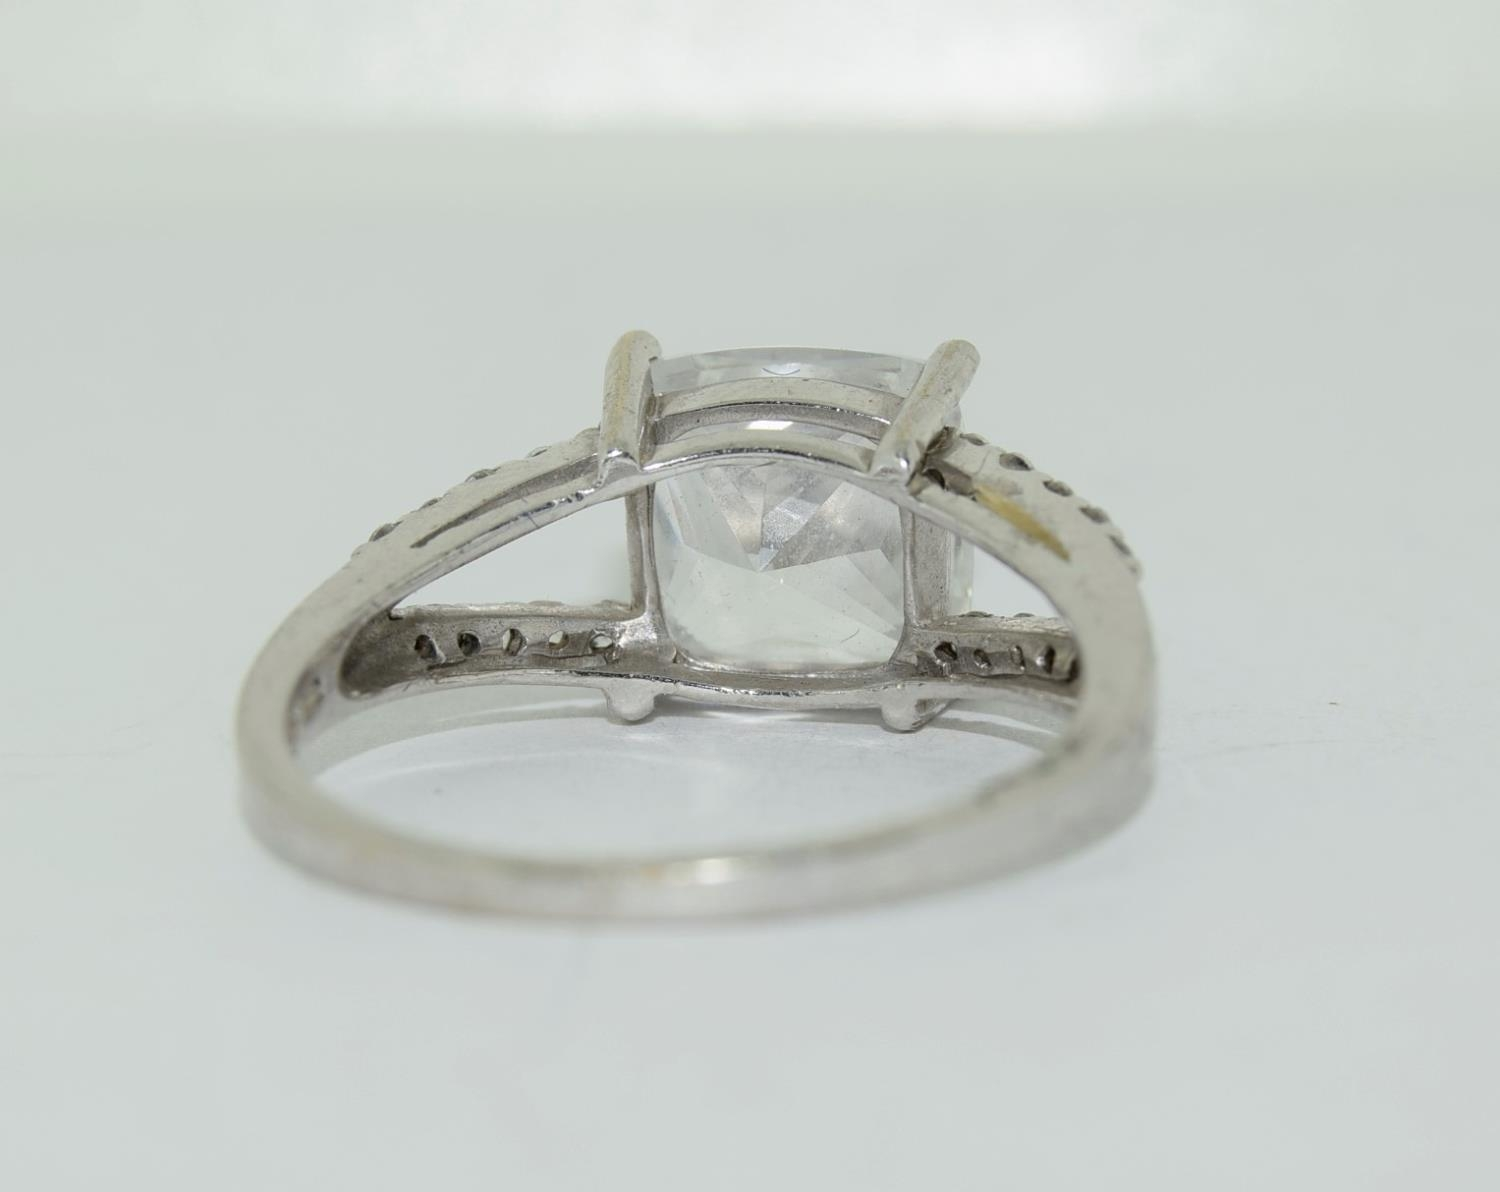 9ct white gold ladies square set solitare ring size R - Image 5 of 12